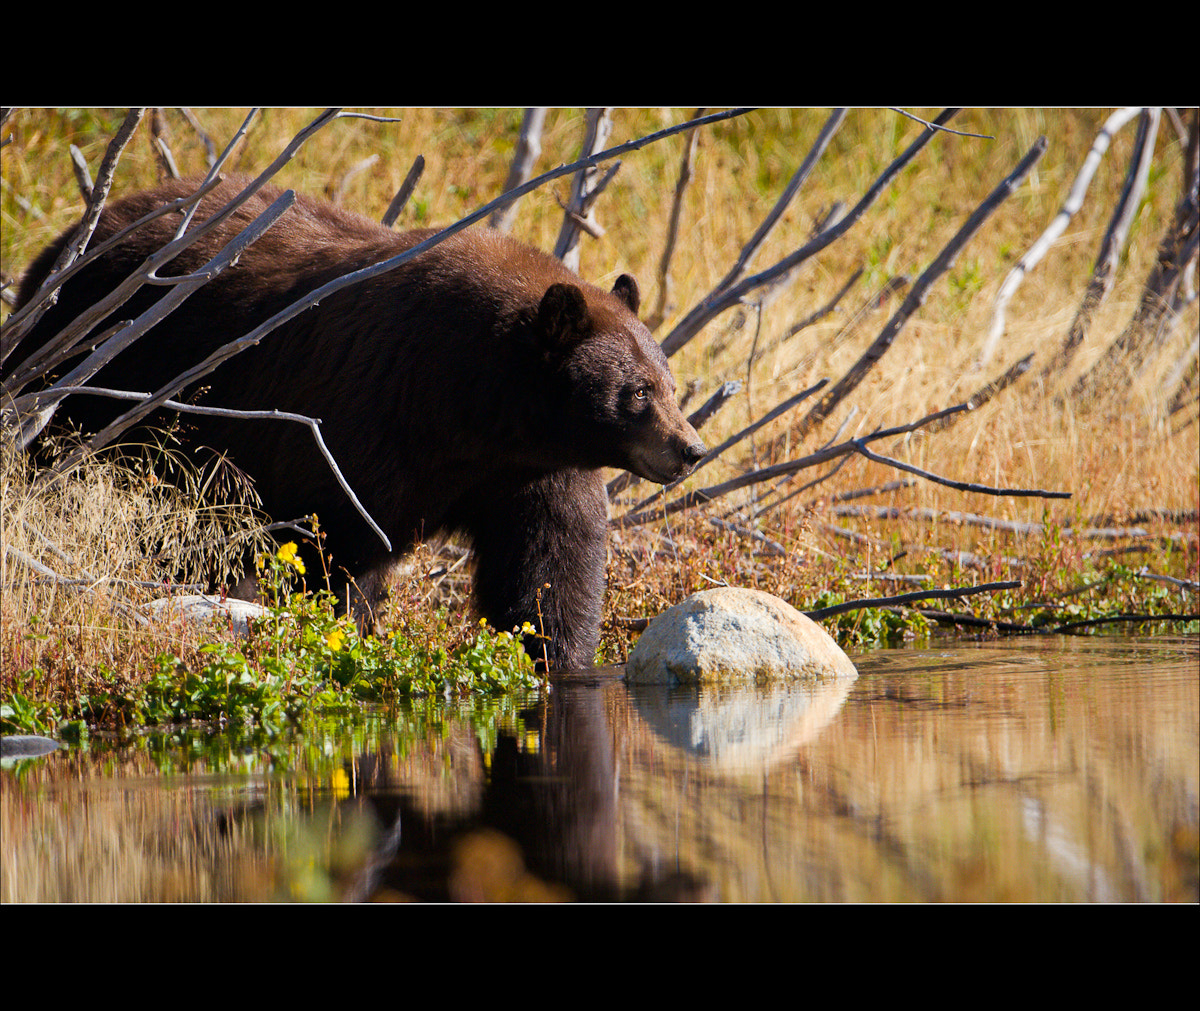 Photograph Cinnamon Bear #1 by Wil Bloodworth on 500px